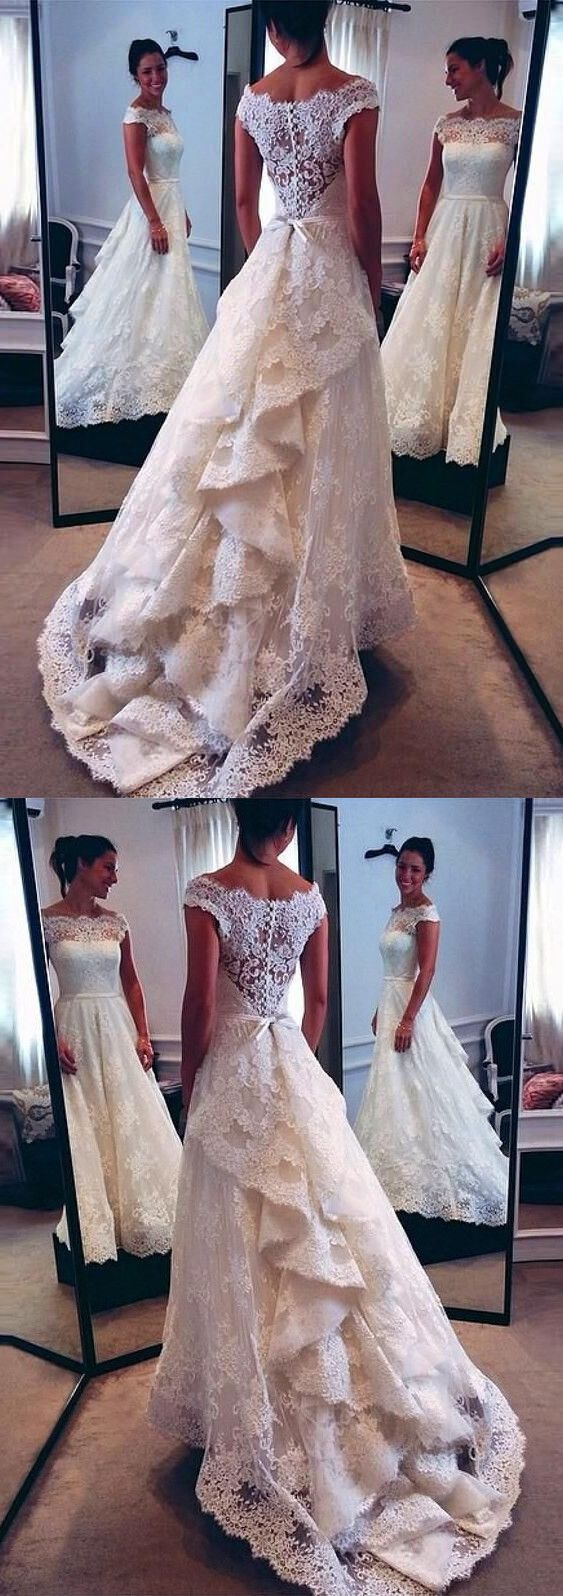 Vintage scoop neckline lace wedding dresses bustle style bridal